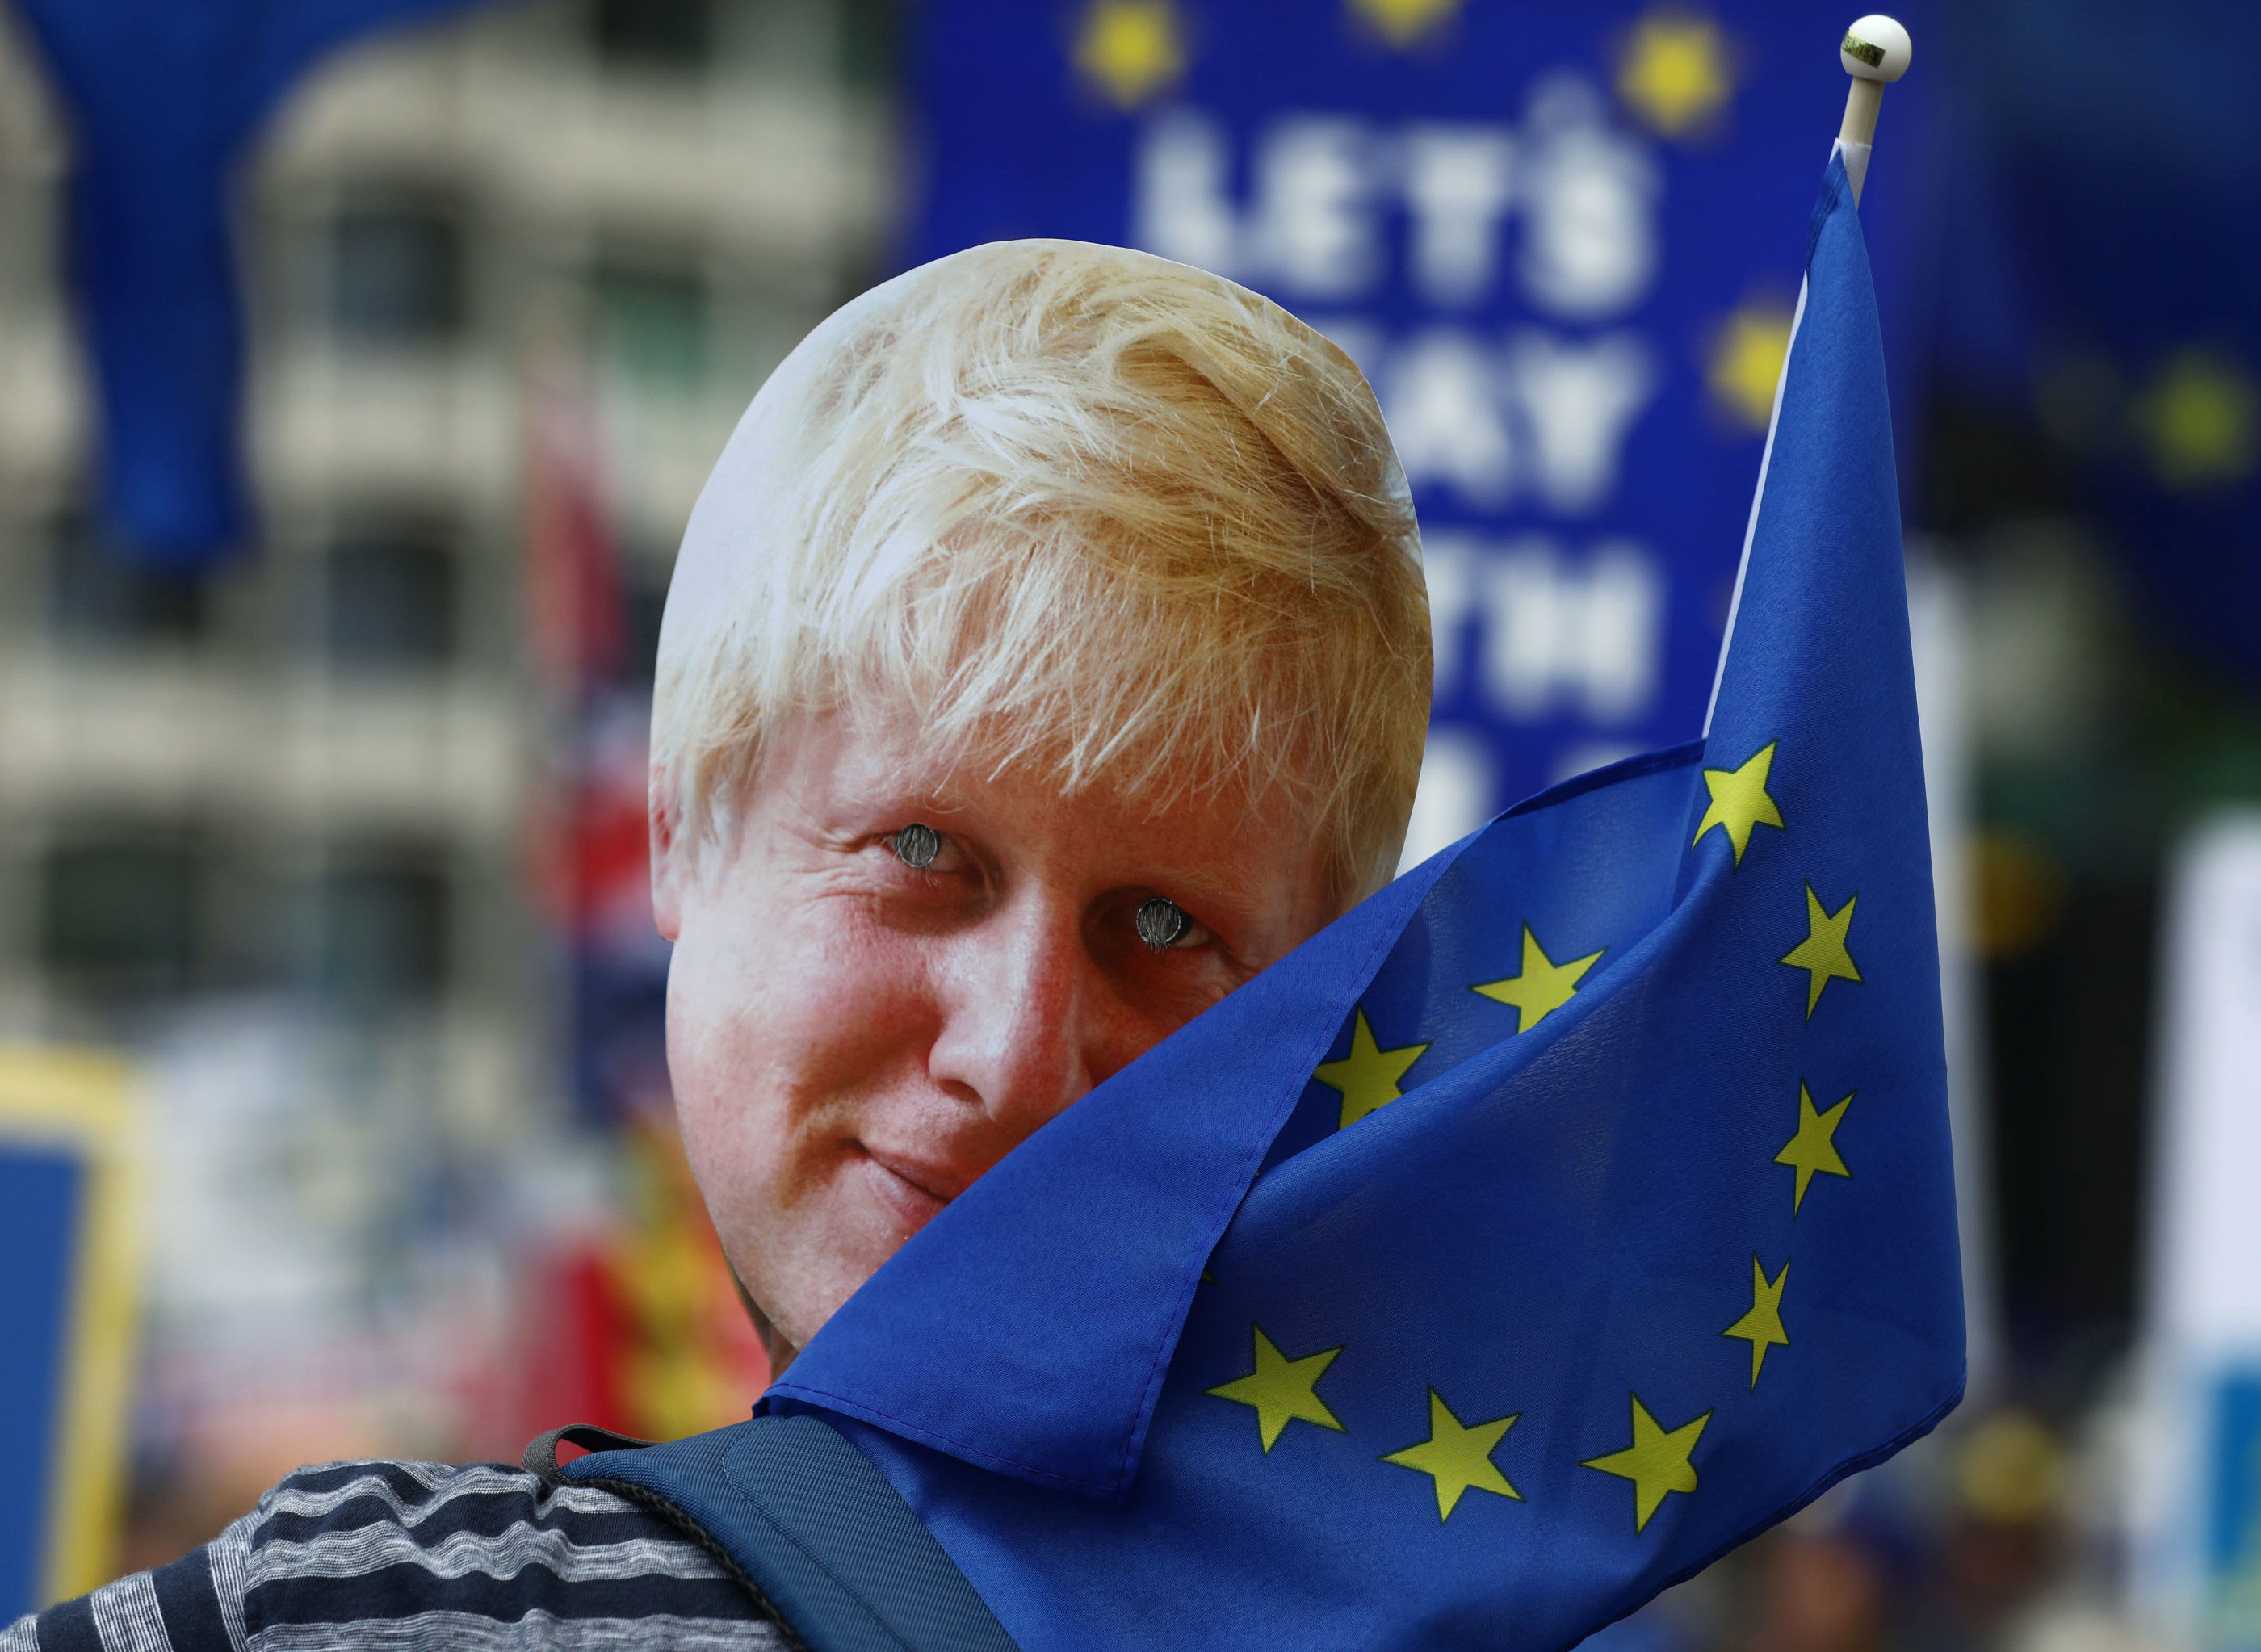 A protester wearing a mask depicting Boris Johnson attends an anti-Brexit 'No to Boris, Yes to Europe' march in London, Britain July 20, 2019.